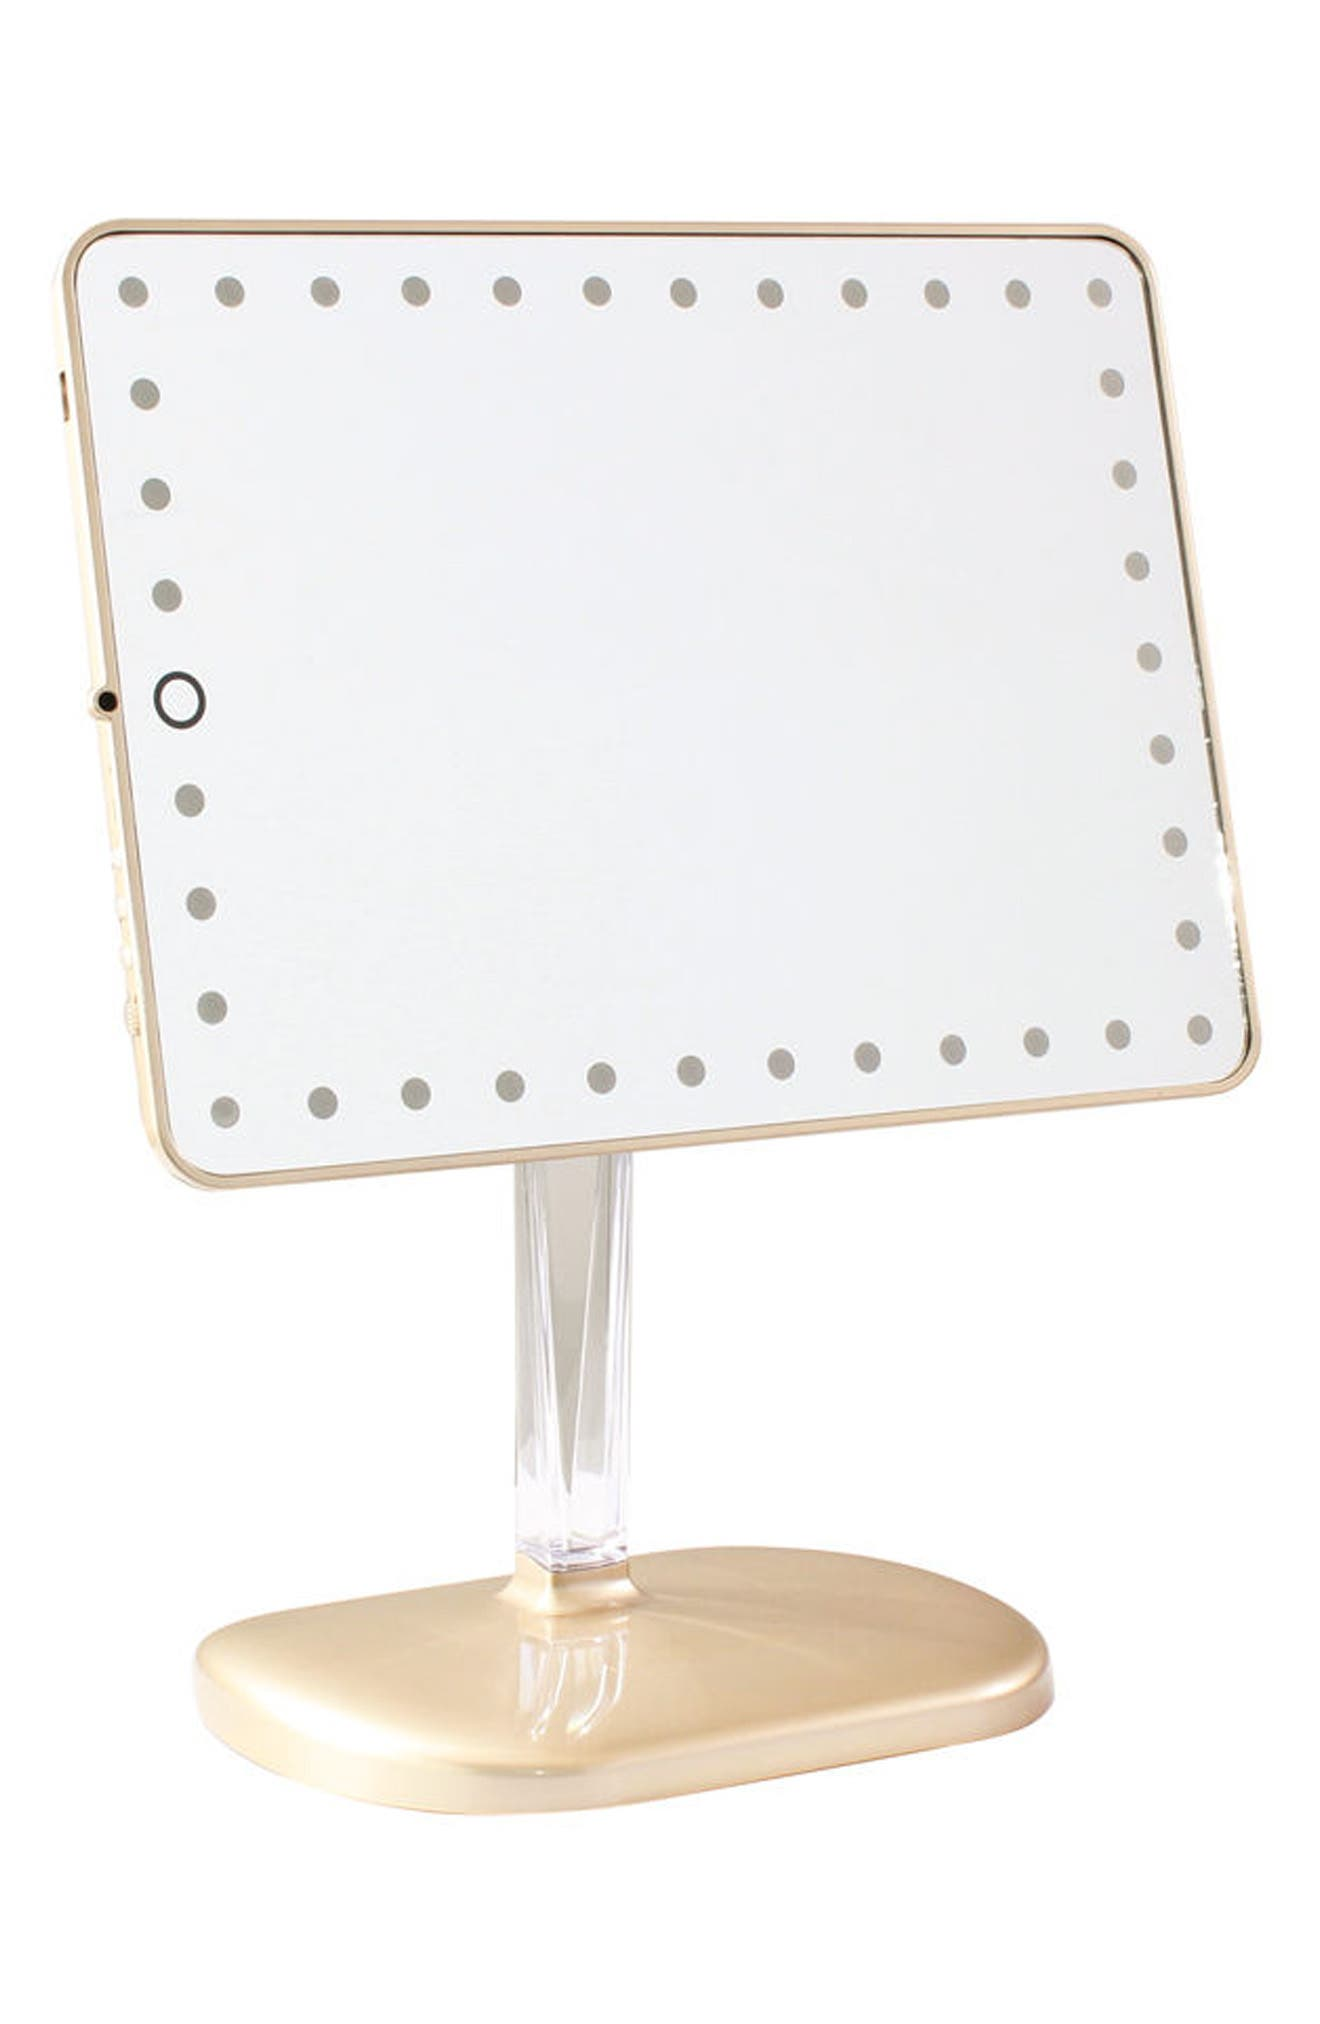 Alternate Image 2  - Impressions Vanity Co. Bling Touch Pro LED Makeup Mirror with Bluetooth® Audio & Speakerphone